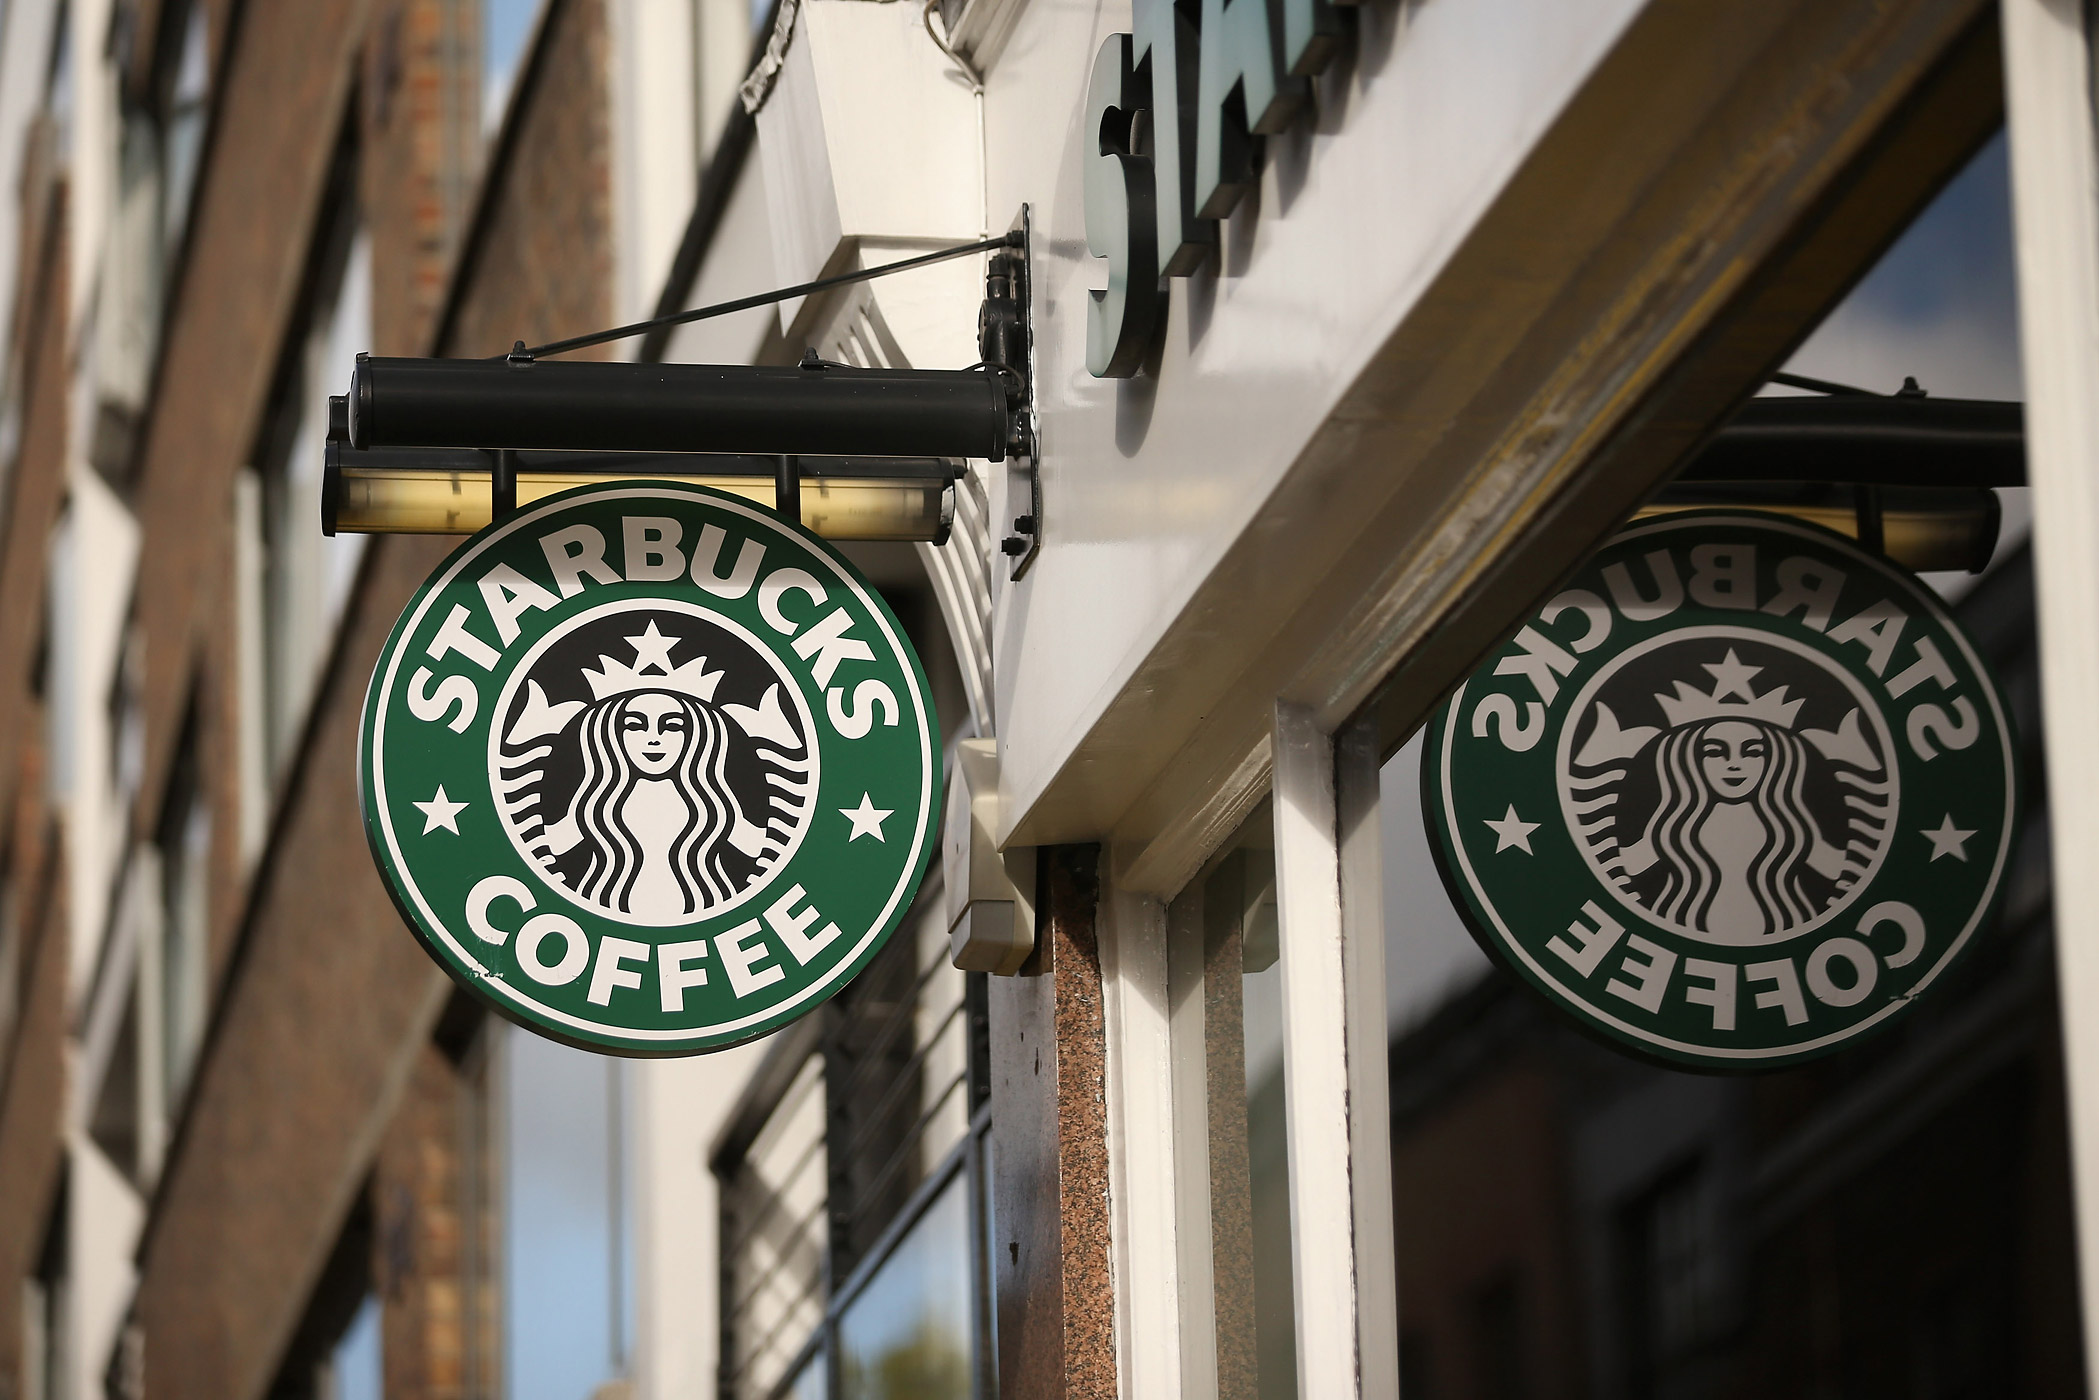 A Starbucks is seen on Oct. 16, 2012 in London, England.